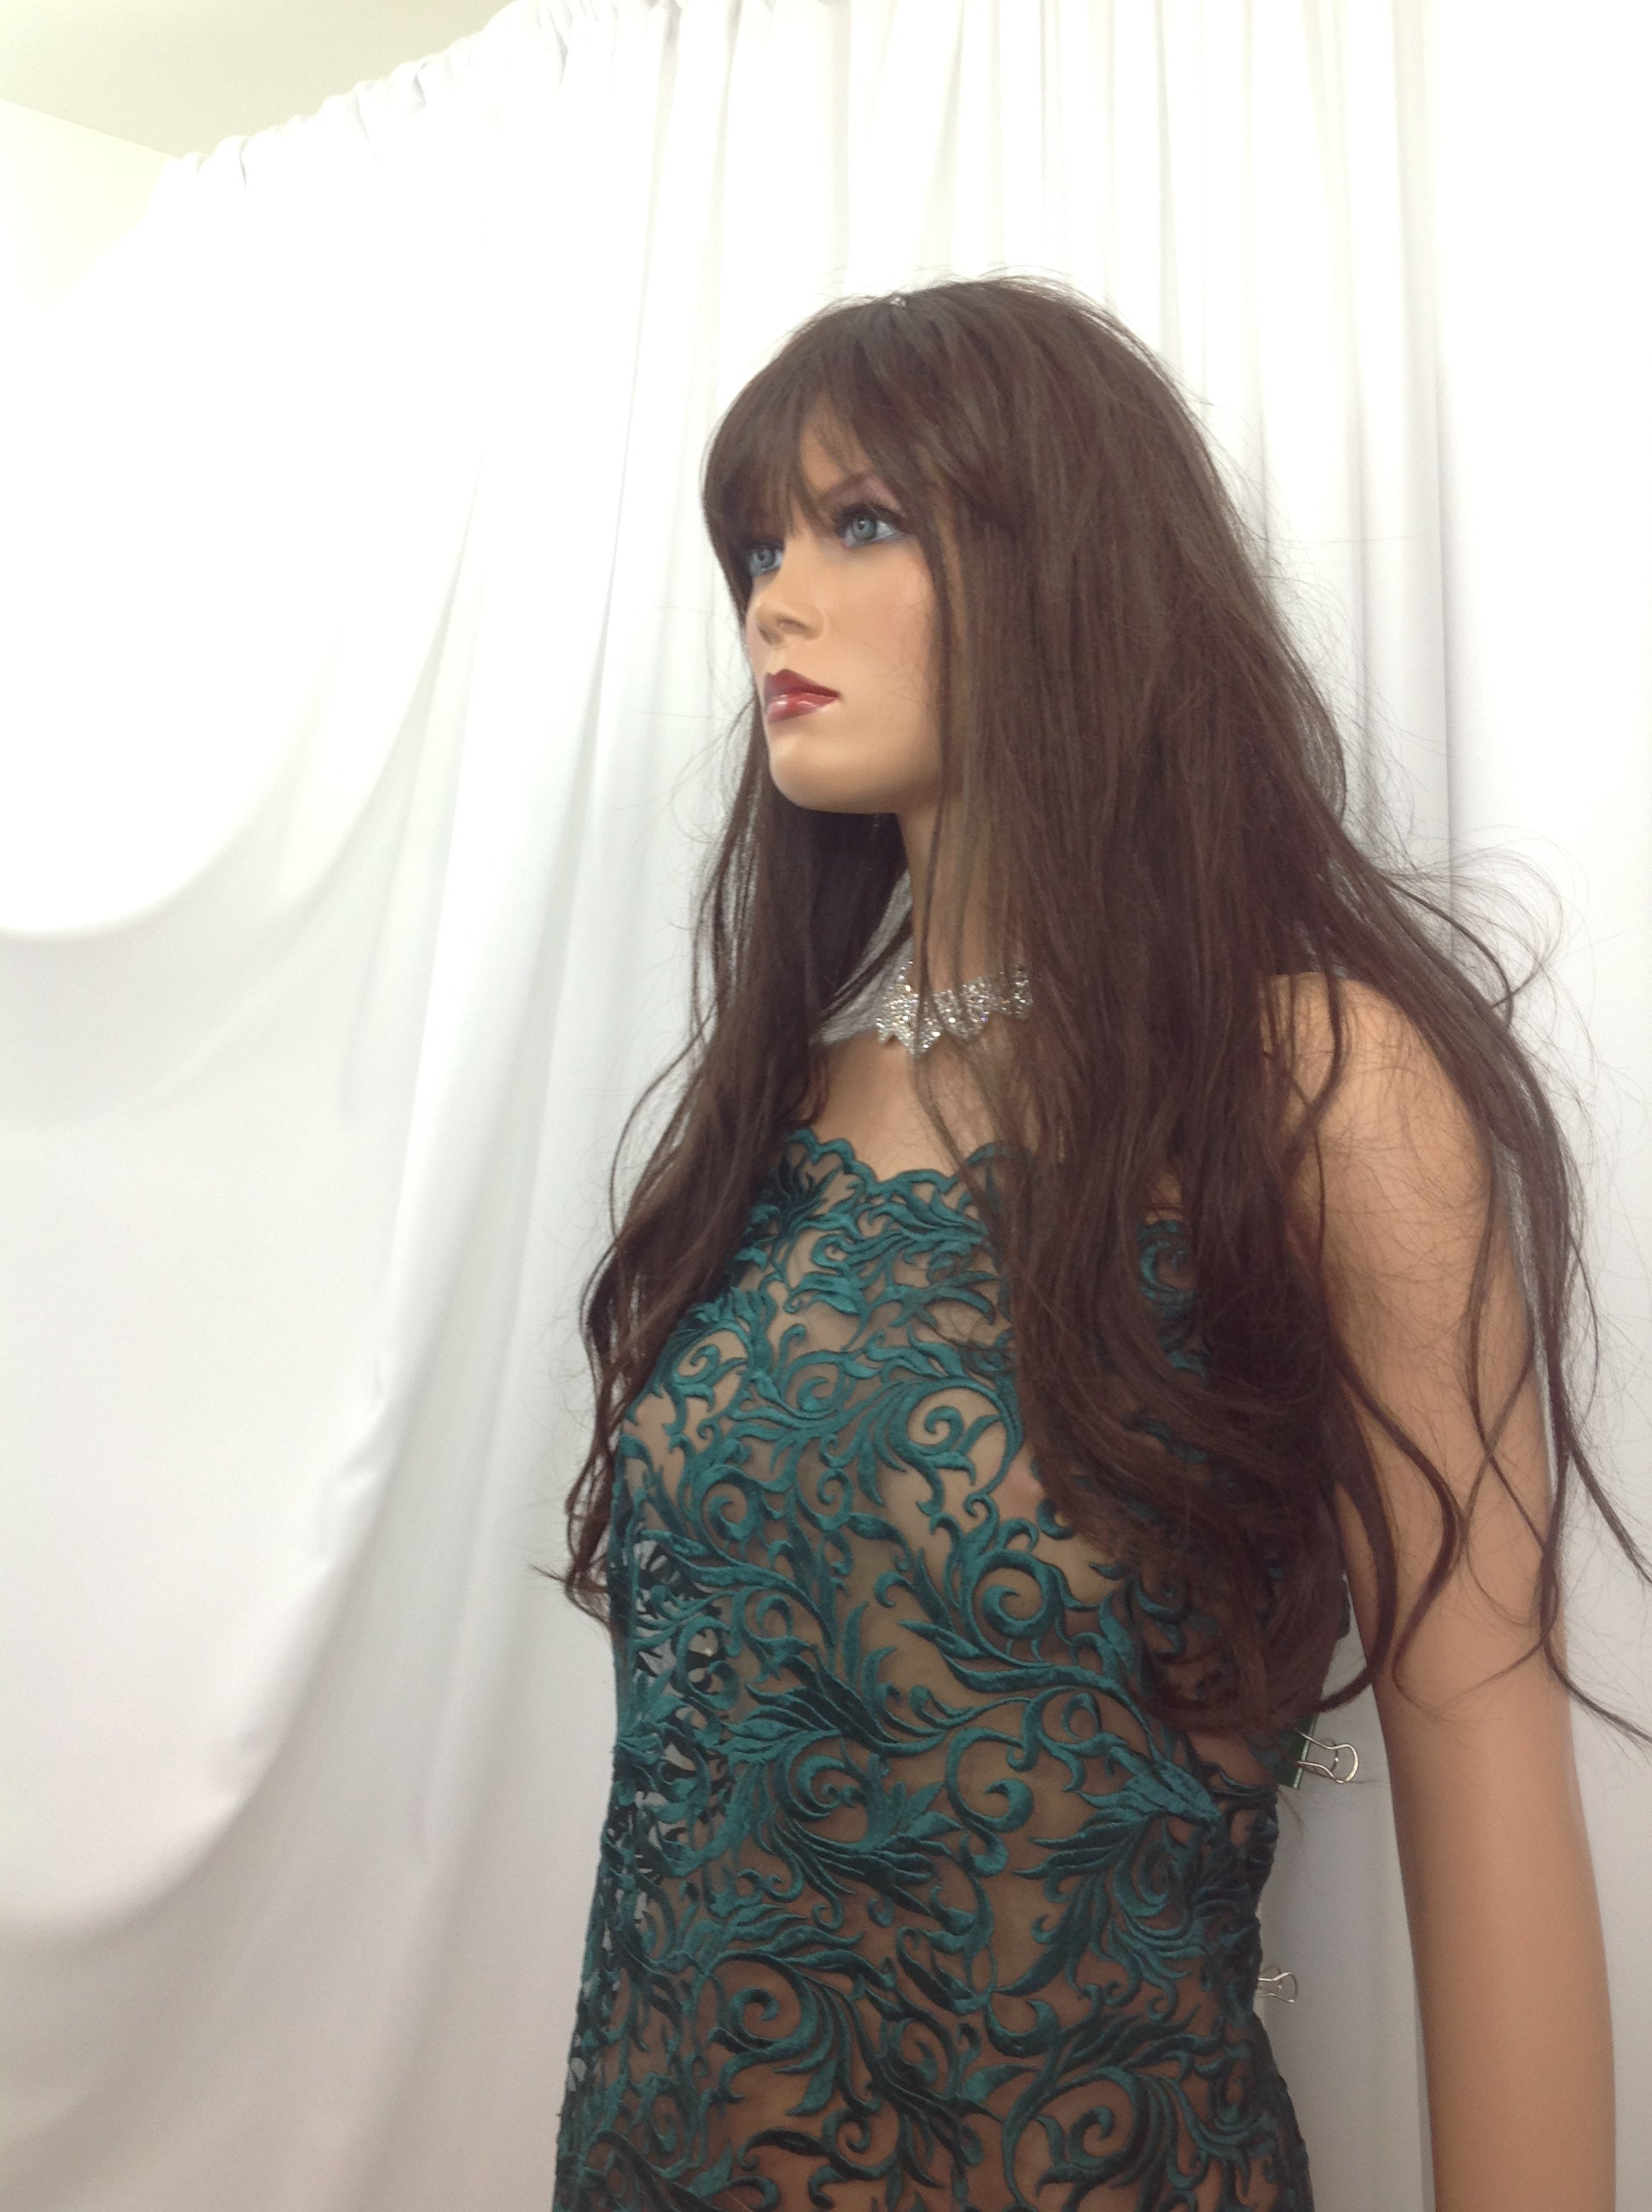 Precious Design Green Guipure Lace - Mesh Dress Top-Trim Bridal Wedding Decorations By The Yard